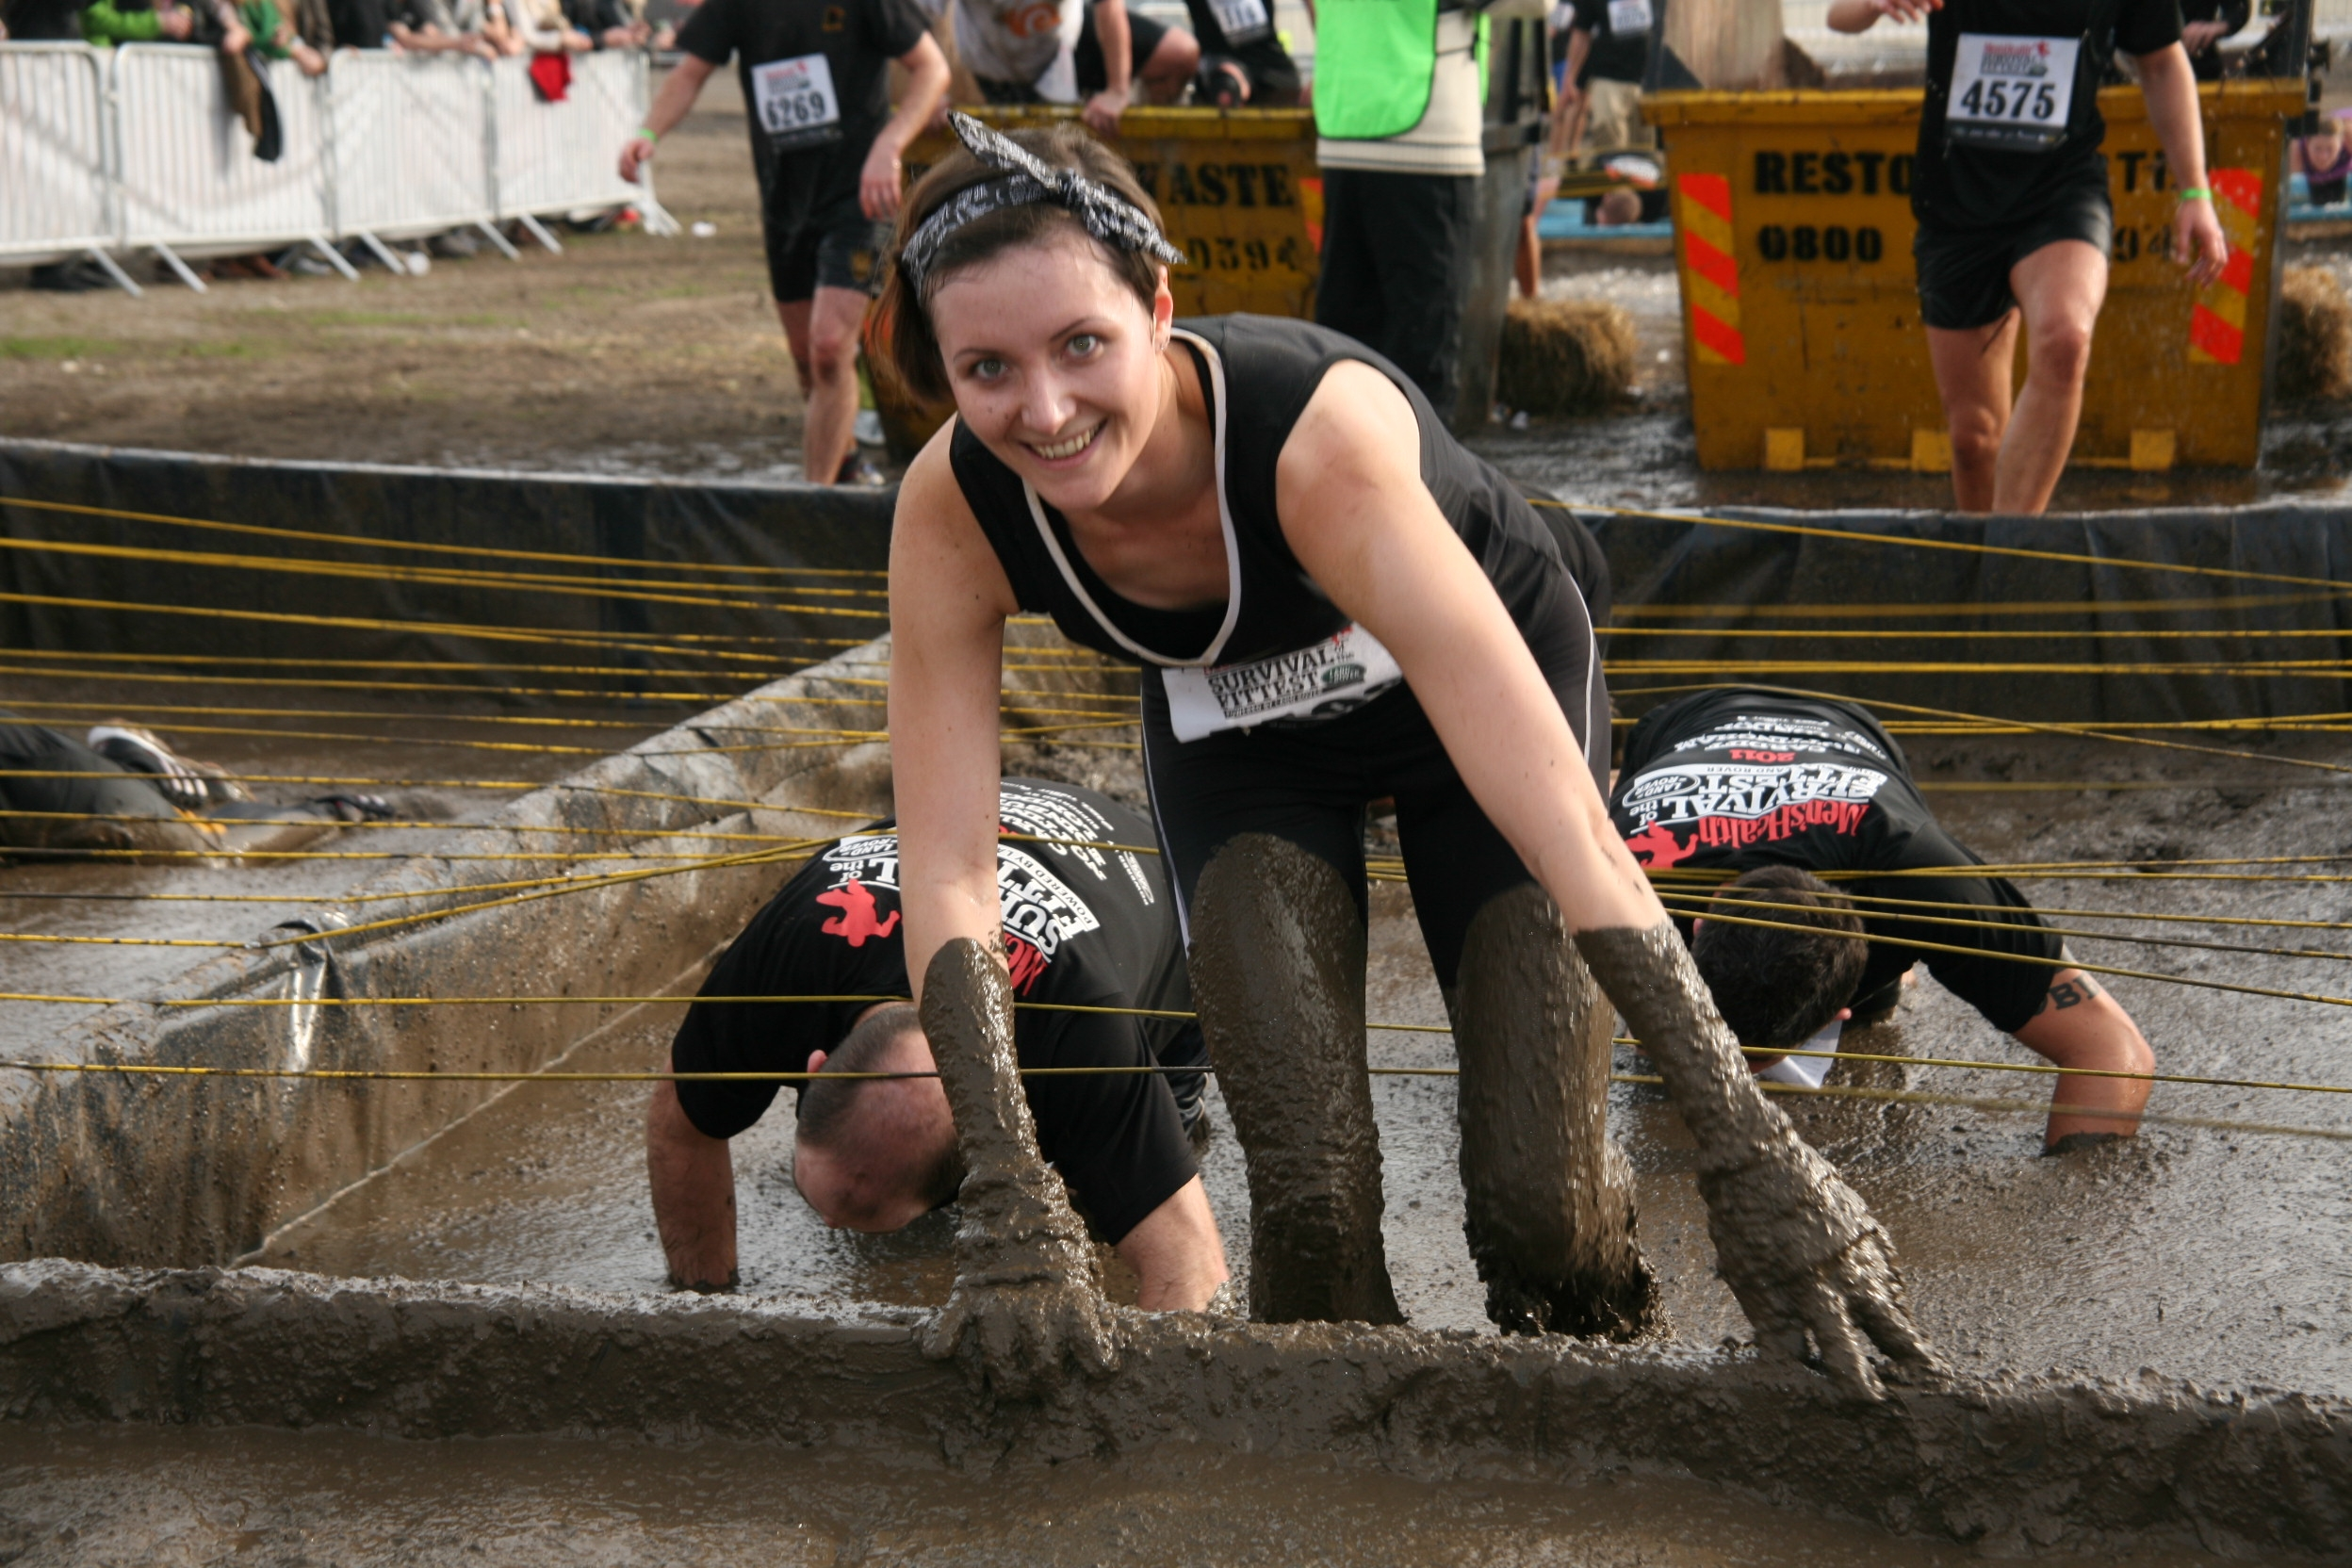 Men's Health Mud Crawl